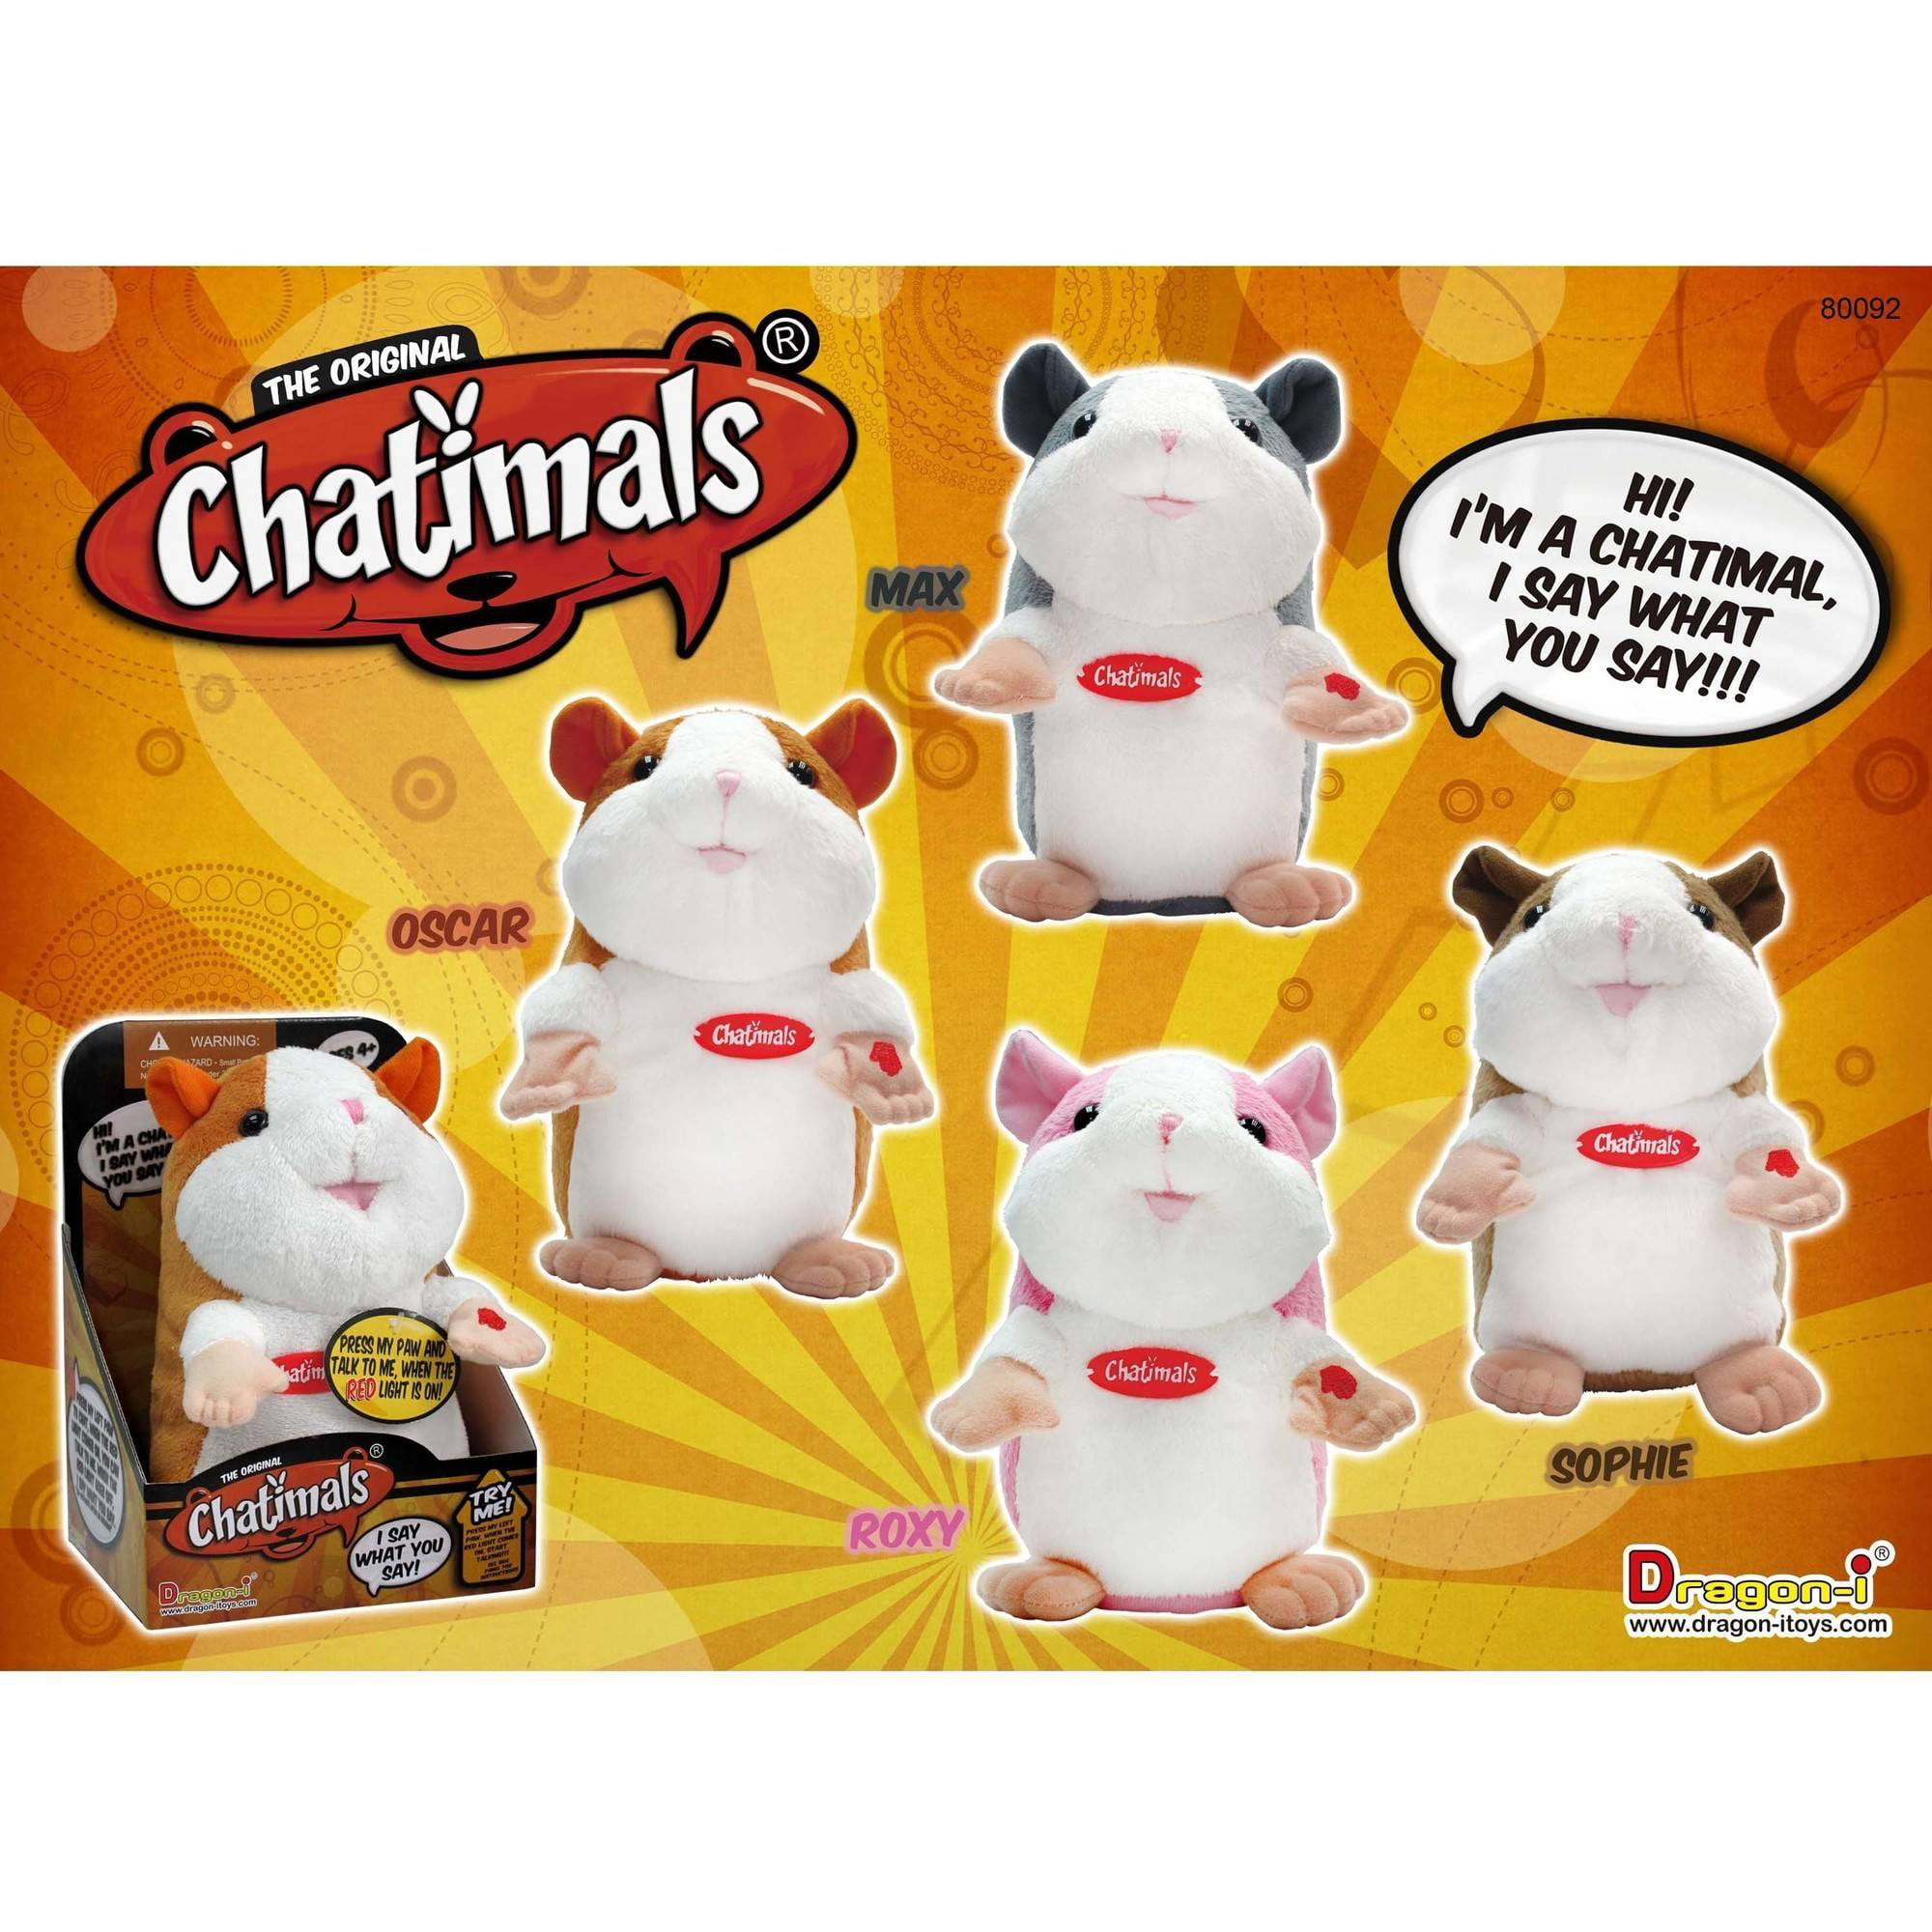 """Talking Chatimals Hamster, WE SAY WHAT YOU SAY, Plush Toy 7.5"""" High by Dragon-I Toys Ltd"""